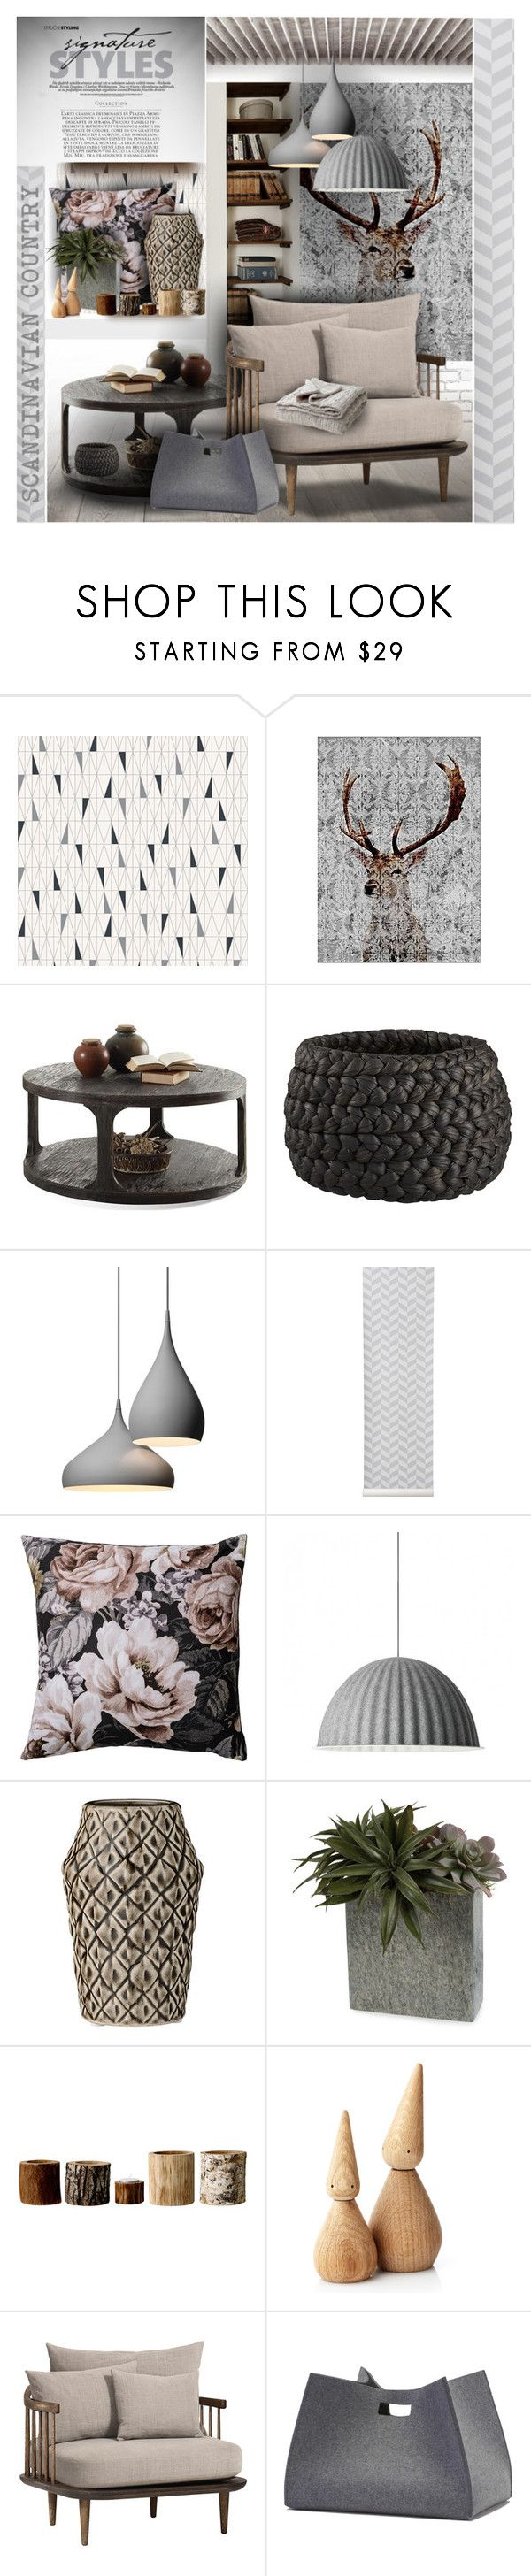 """""""Scandinavian Country"""" by giudittina on Polyvore featuring interior, interiors, interior design, home, home decor, interior decorating, BoråsTapeter, CB2, ferm LIVING and Bloomingville"""